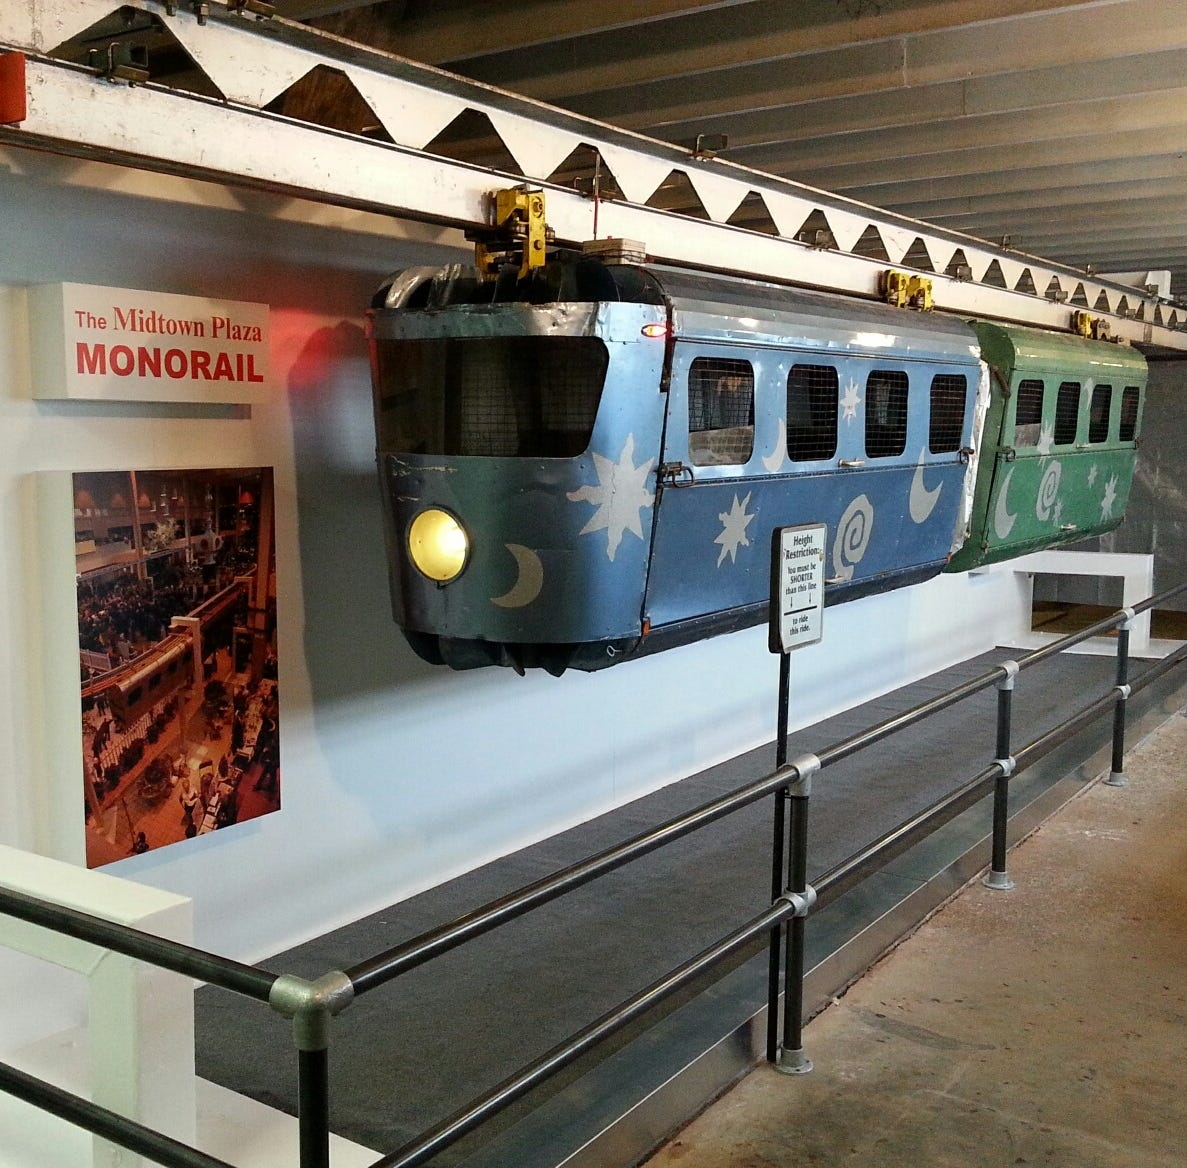 Christmas memories return: Midtown monorail goes on display